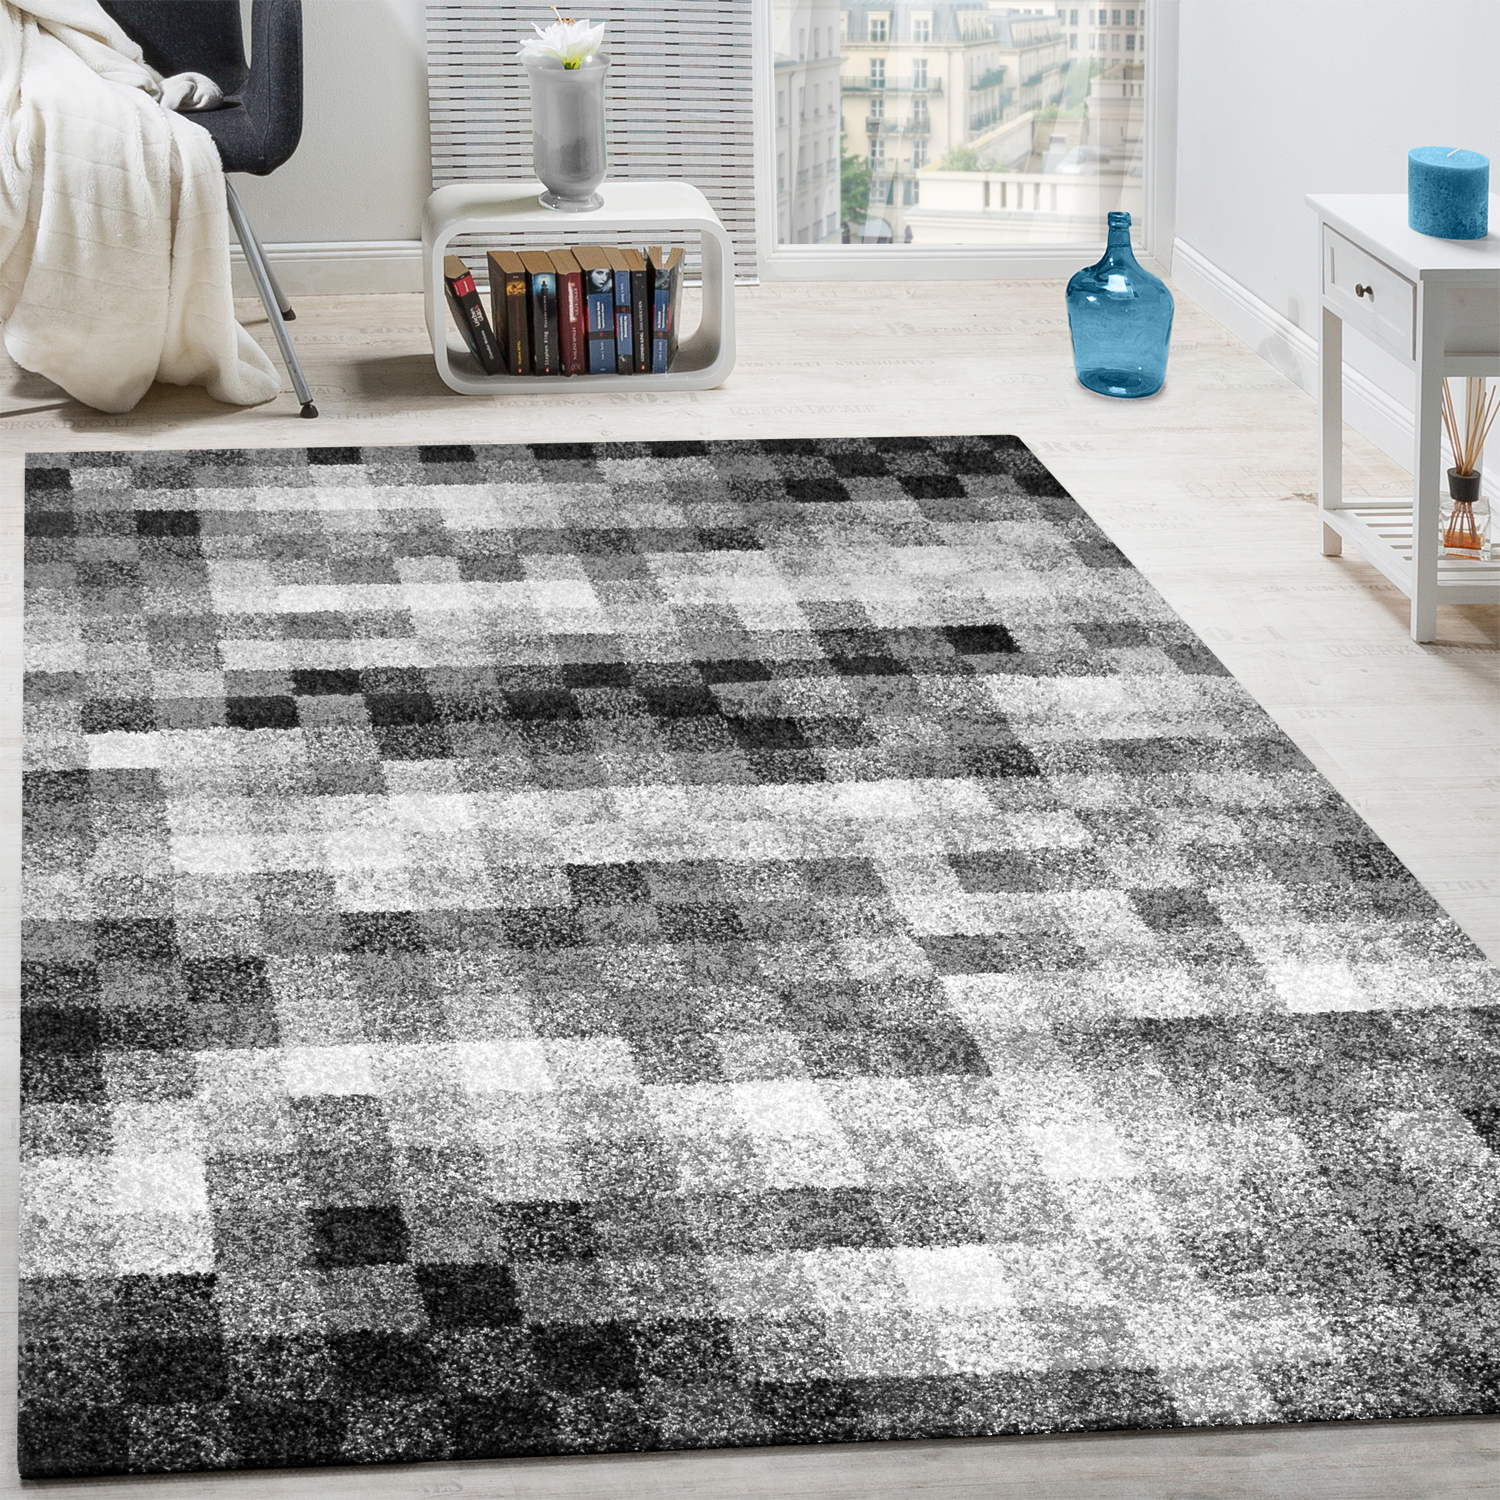 High-Quality Heavy Woven Rug Checked Mottled Black White Grey Clearance Sale